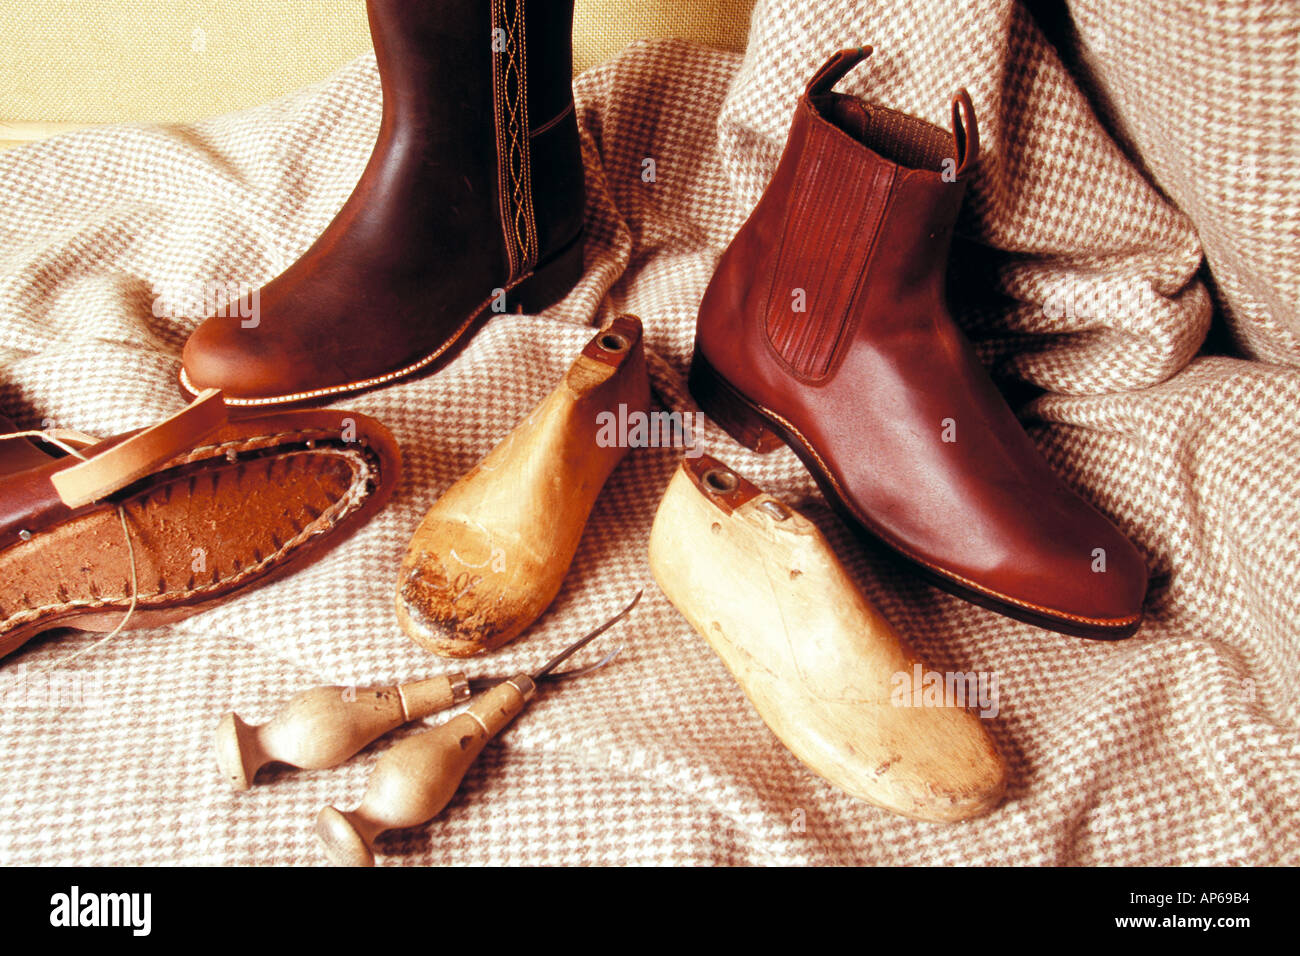 artisan elaboration of footwear in valverde del camino huelva Andalusia Spain - Stock Image